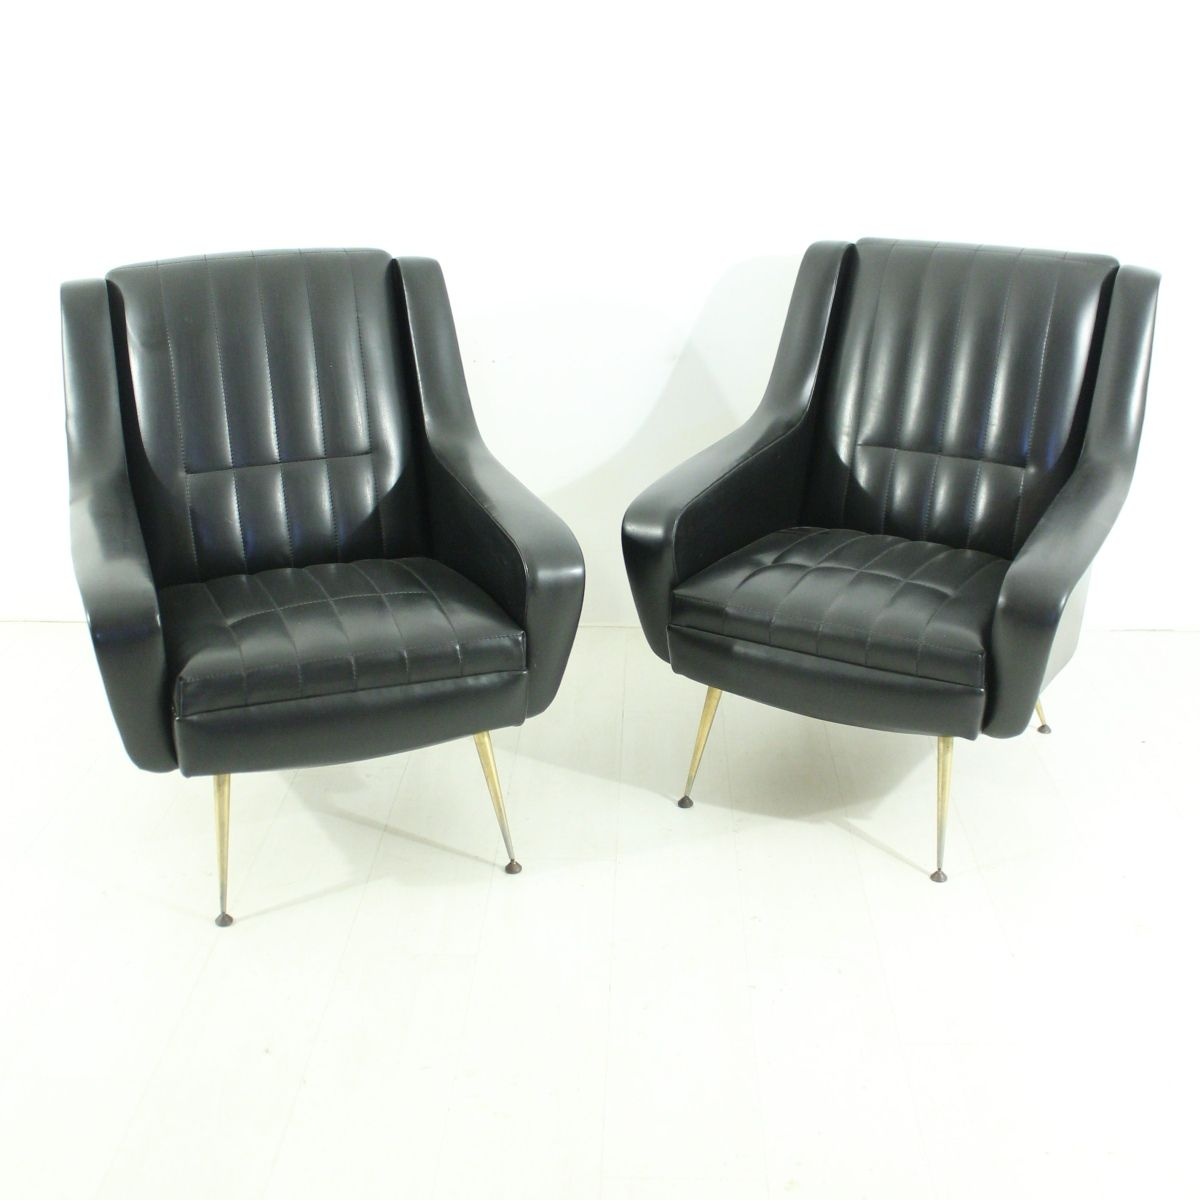 Black armchairs 1950s set of 2 for sale at pamono for 2 armchairs for sale